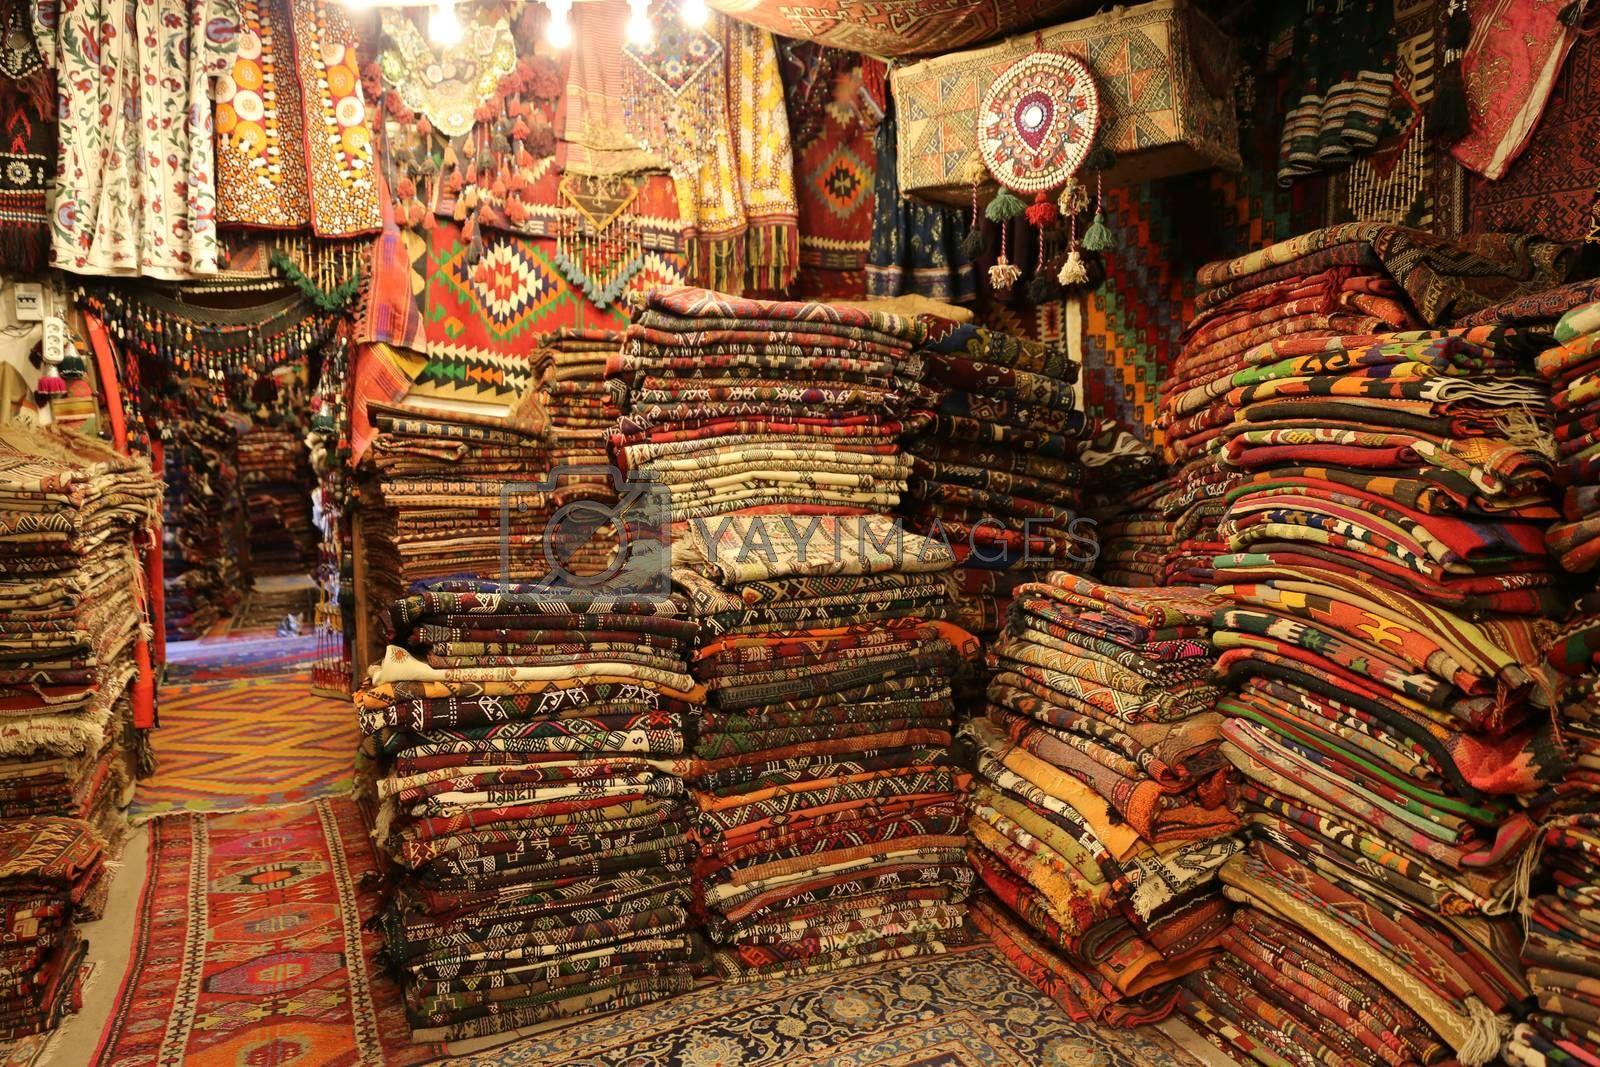 Turkish Traditional Carpets in Goreme, Nevsehir, Turkey by EvrenKalinbacak